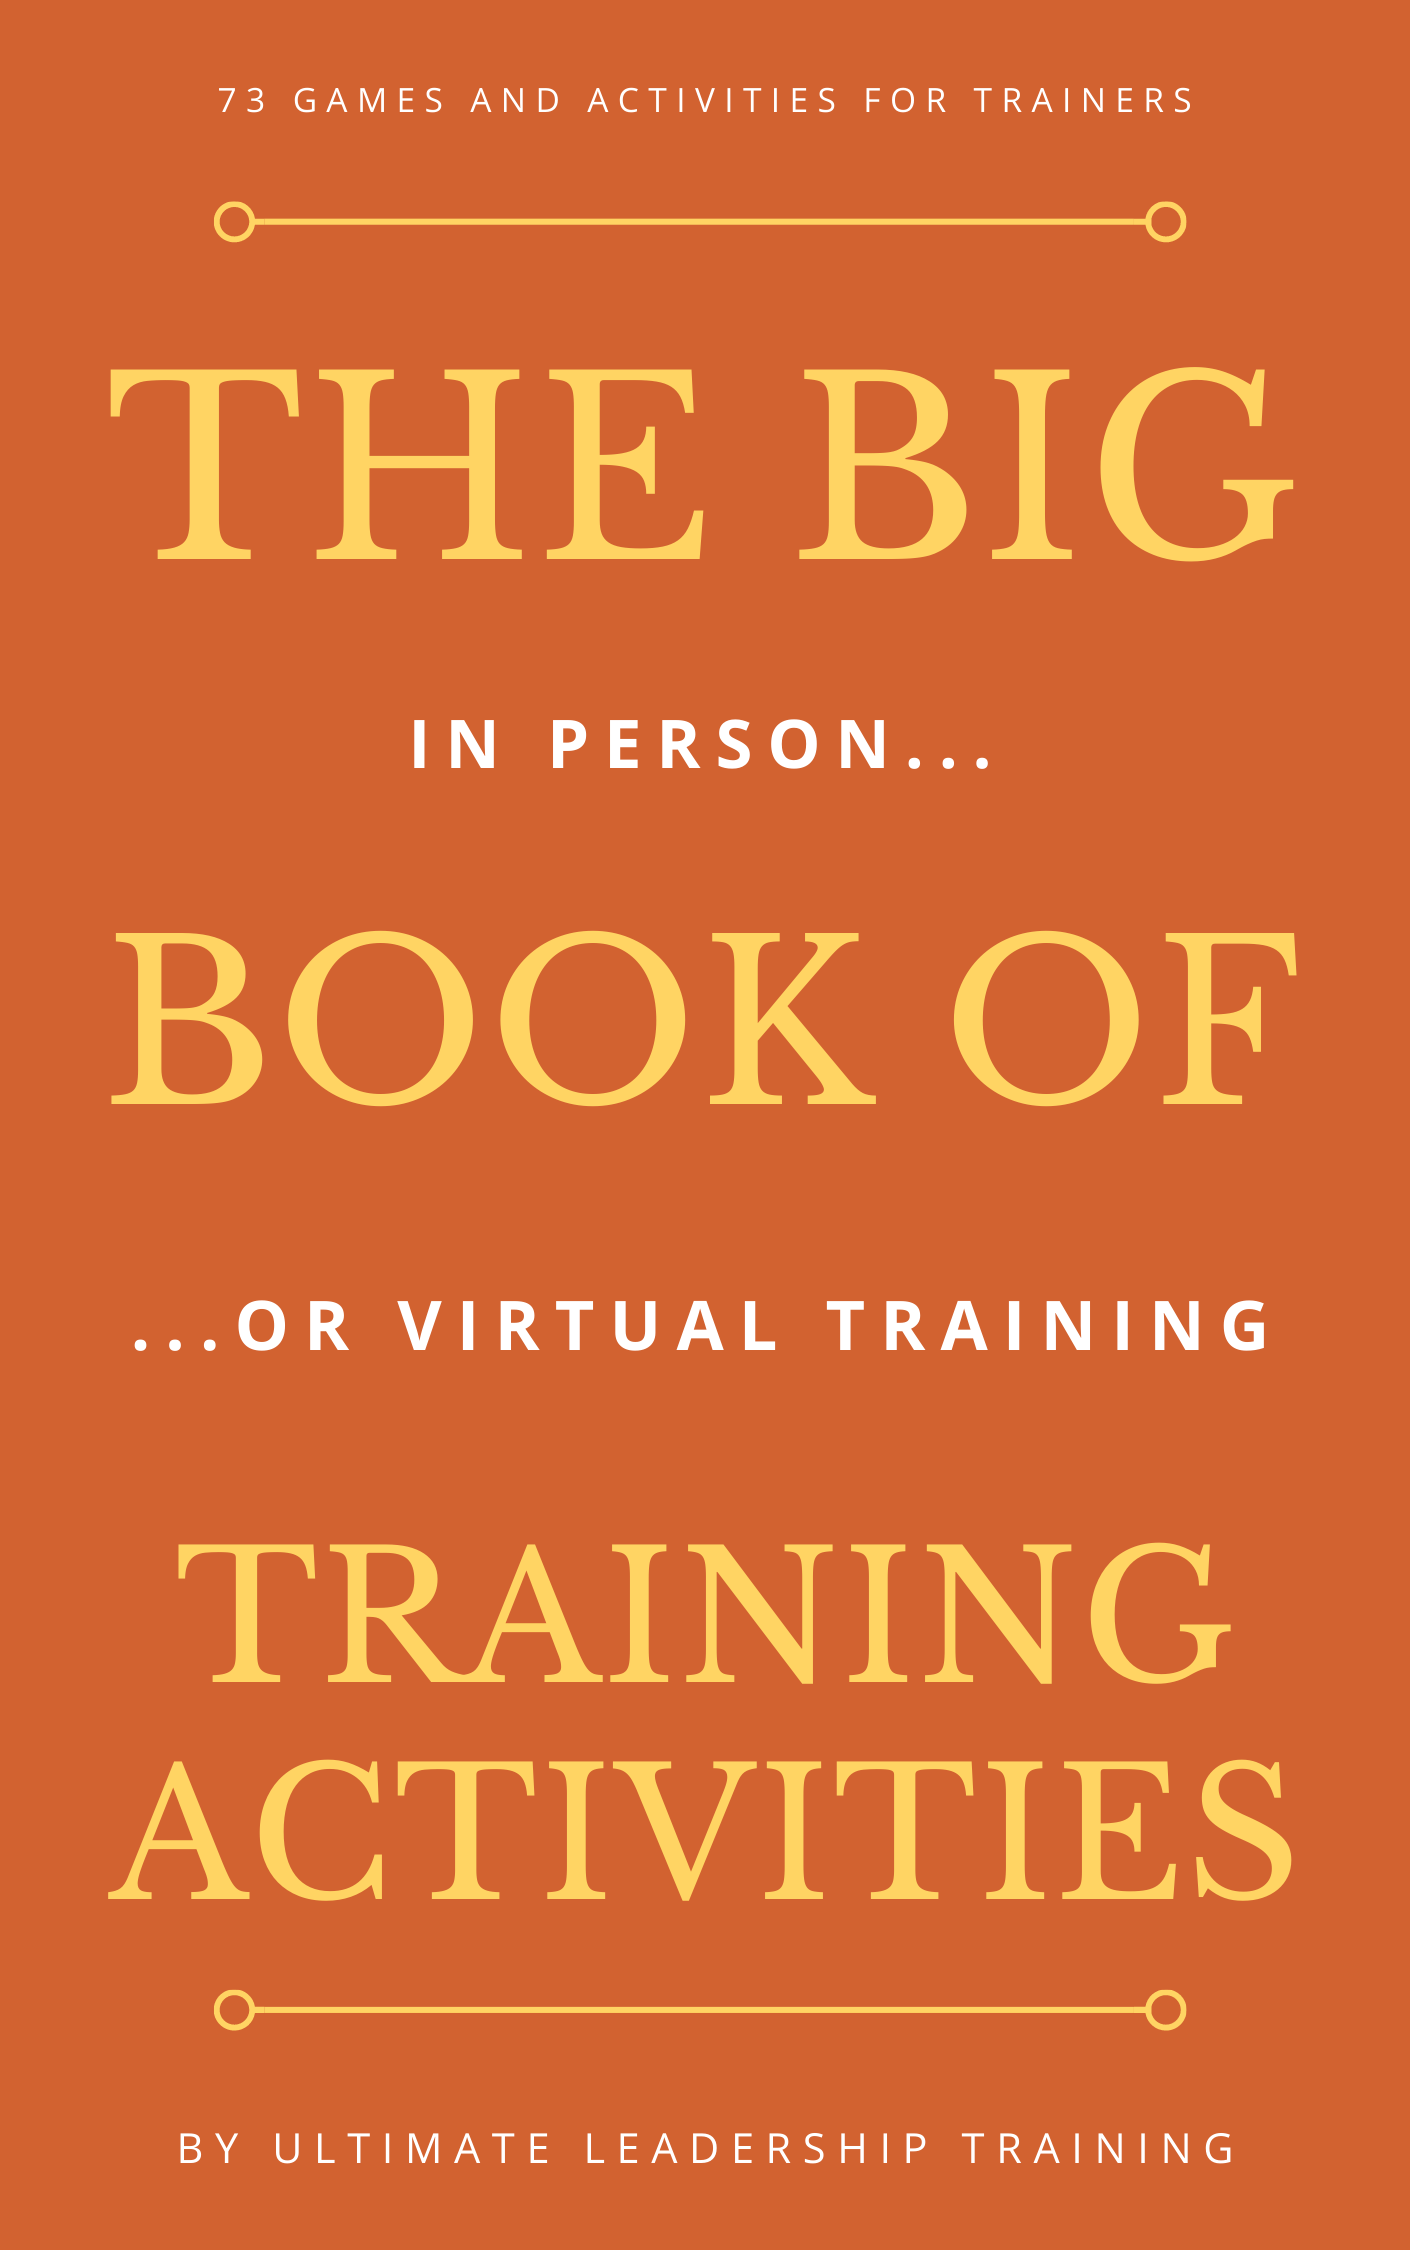 The big book of team building activities for virtual and in person training and team building